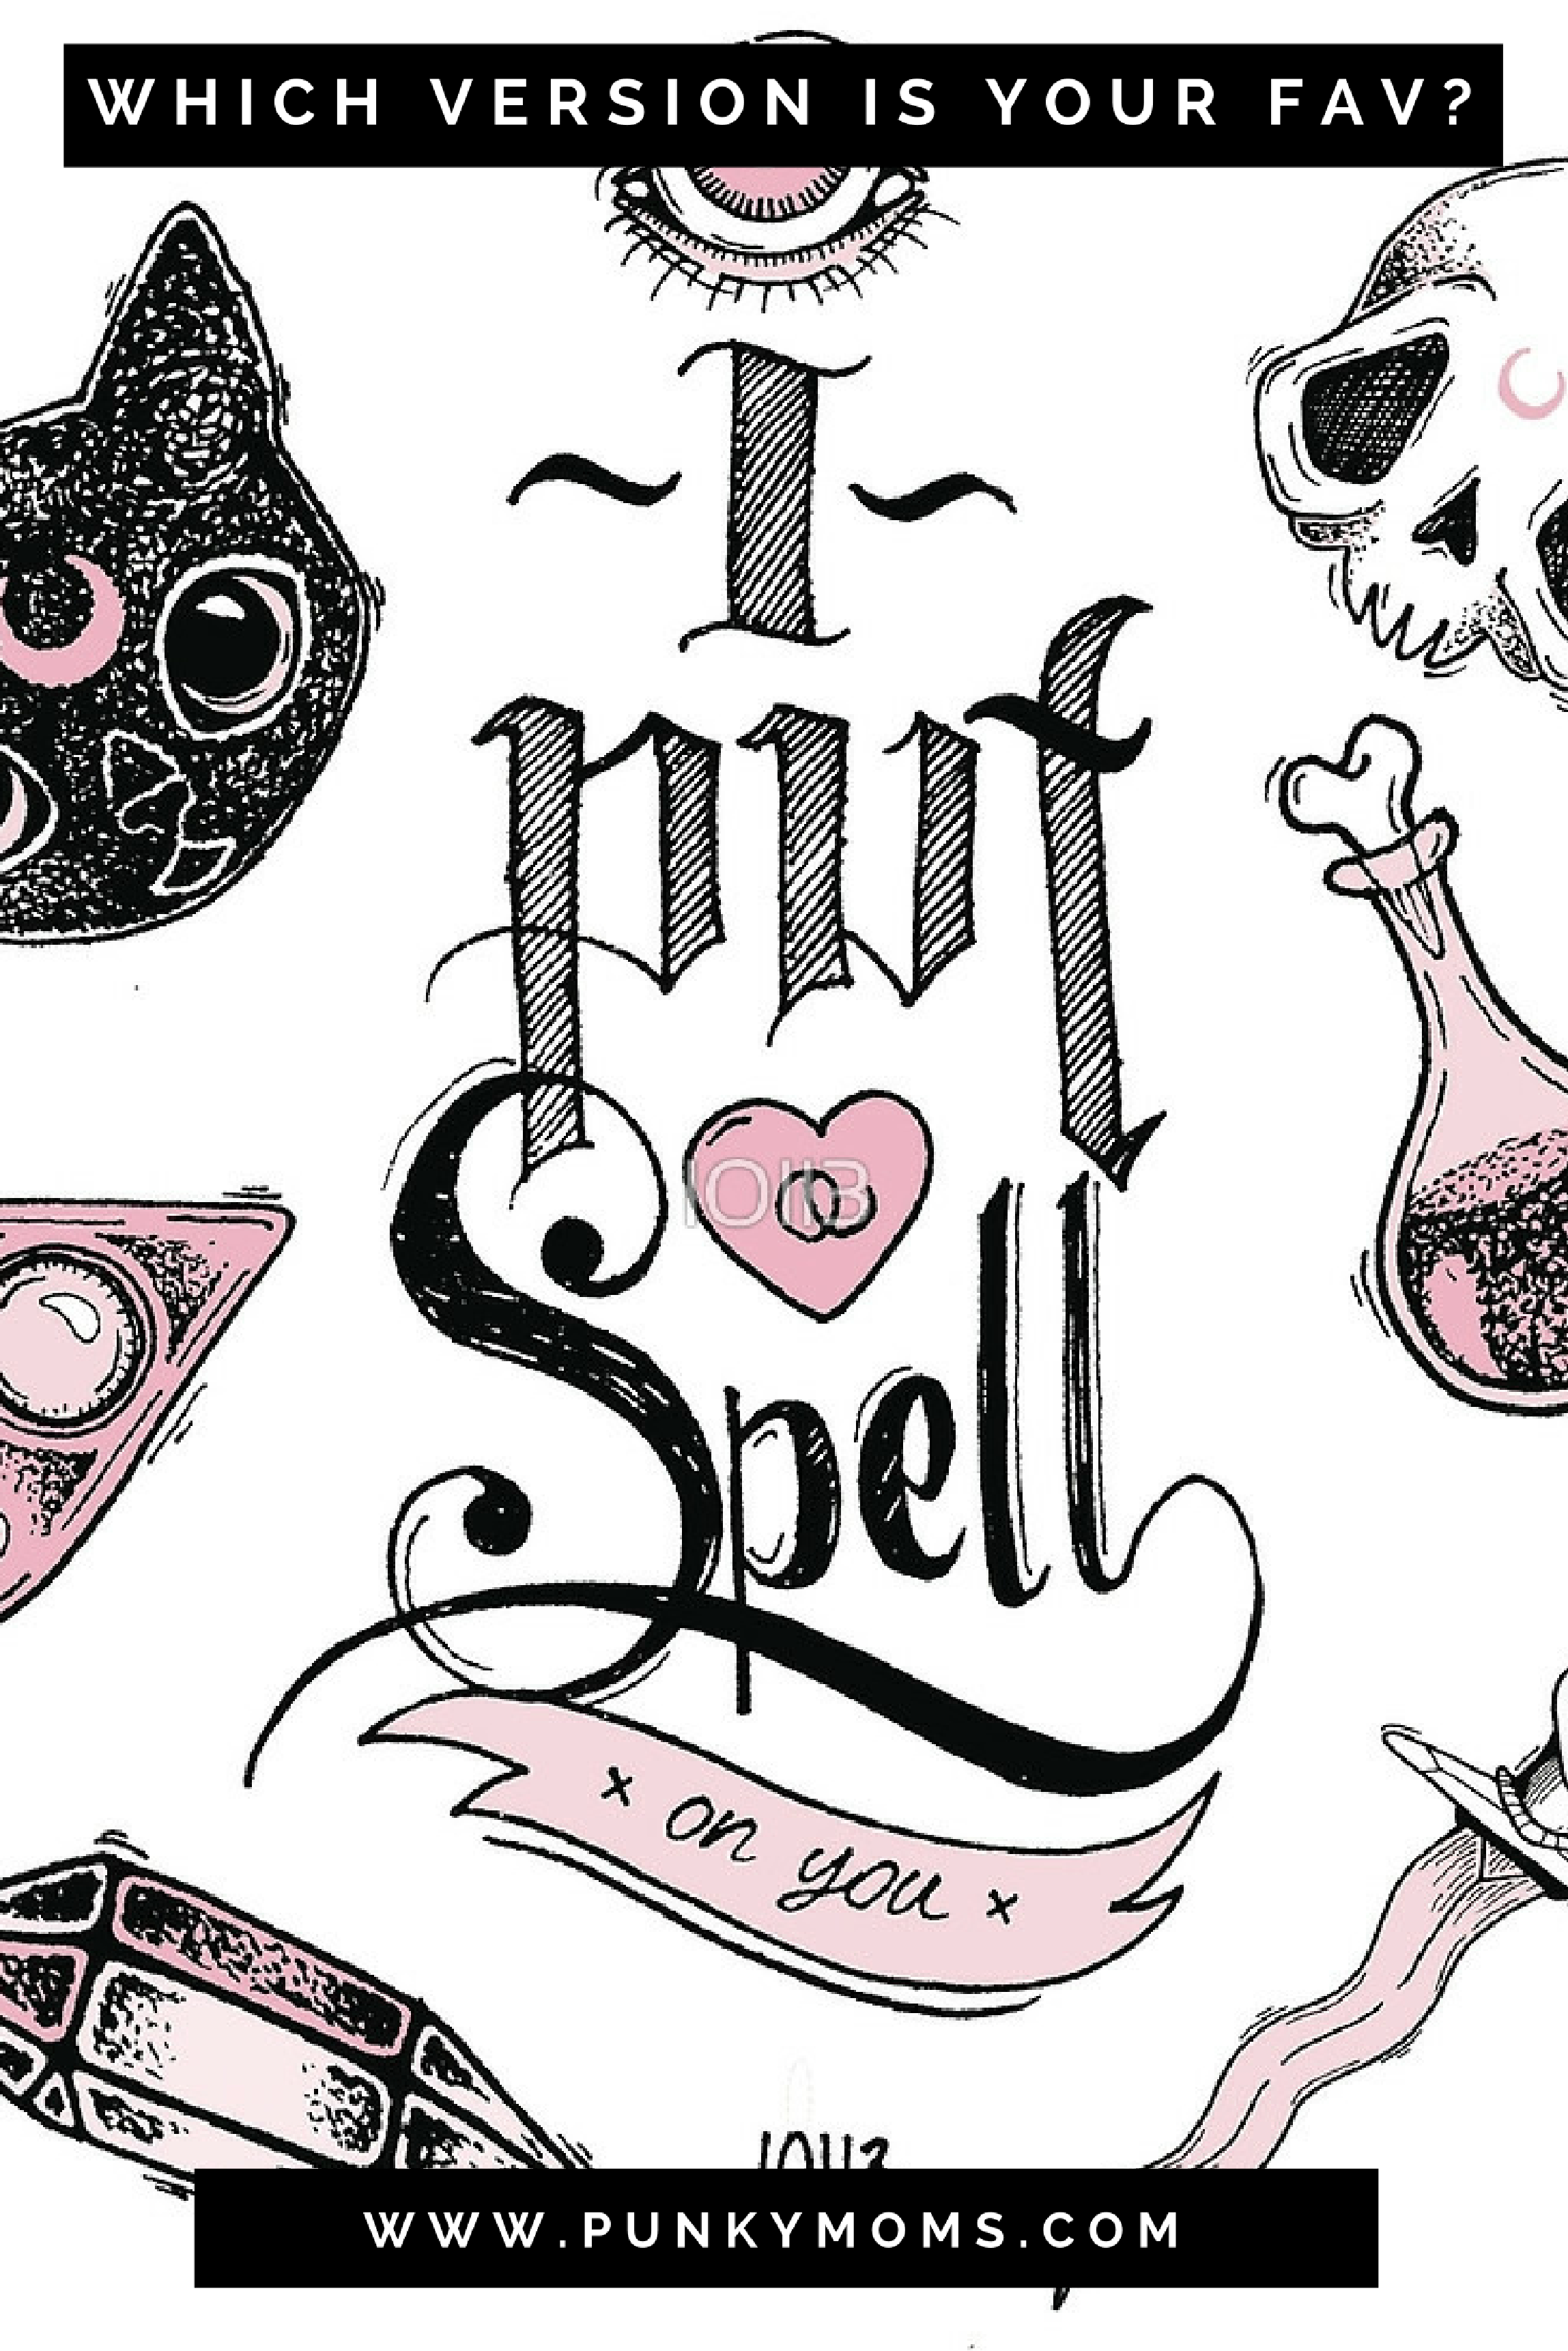 I put a spell on you. Which version is your favorite? Screamin Jay Hawkins? Marilyn Manson?